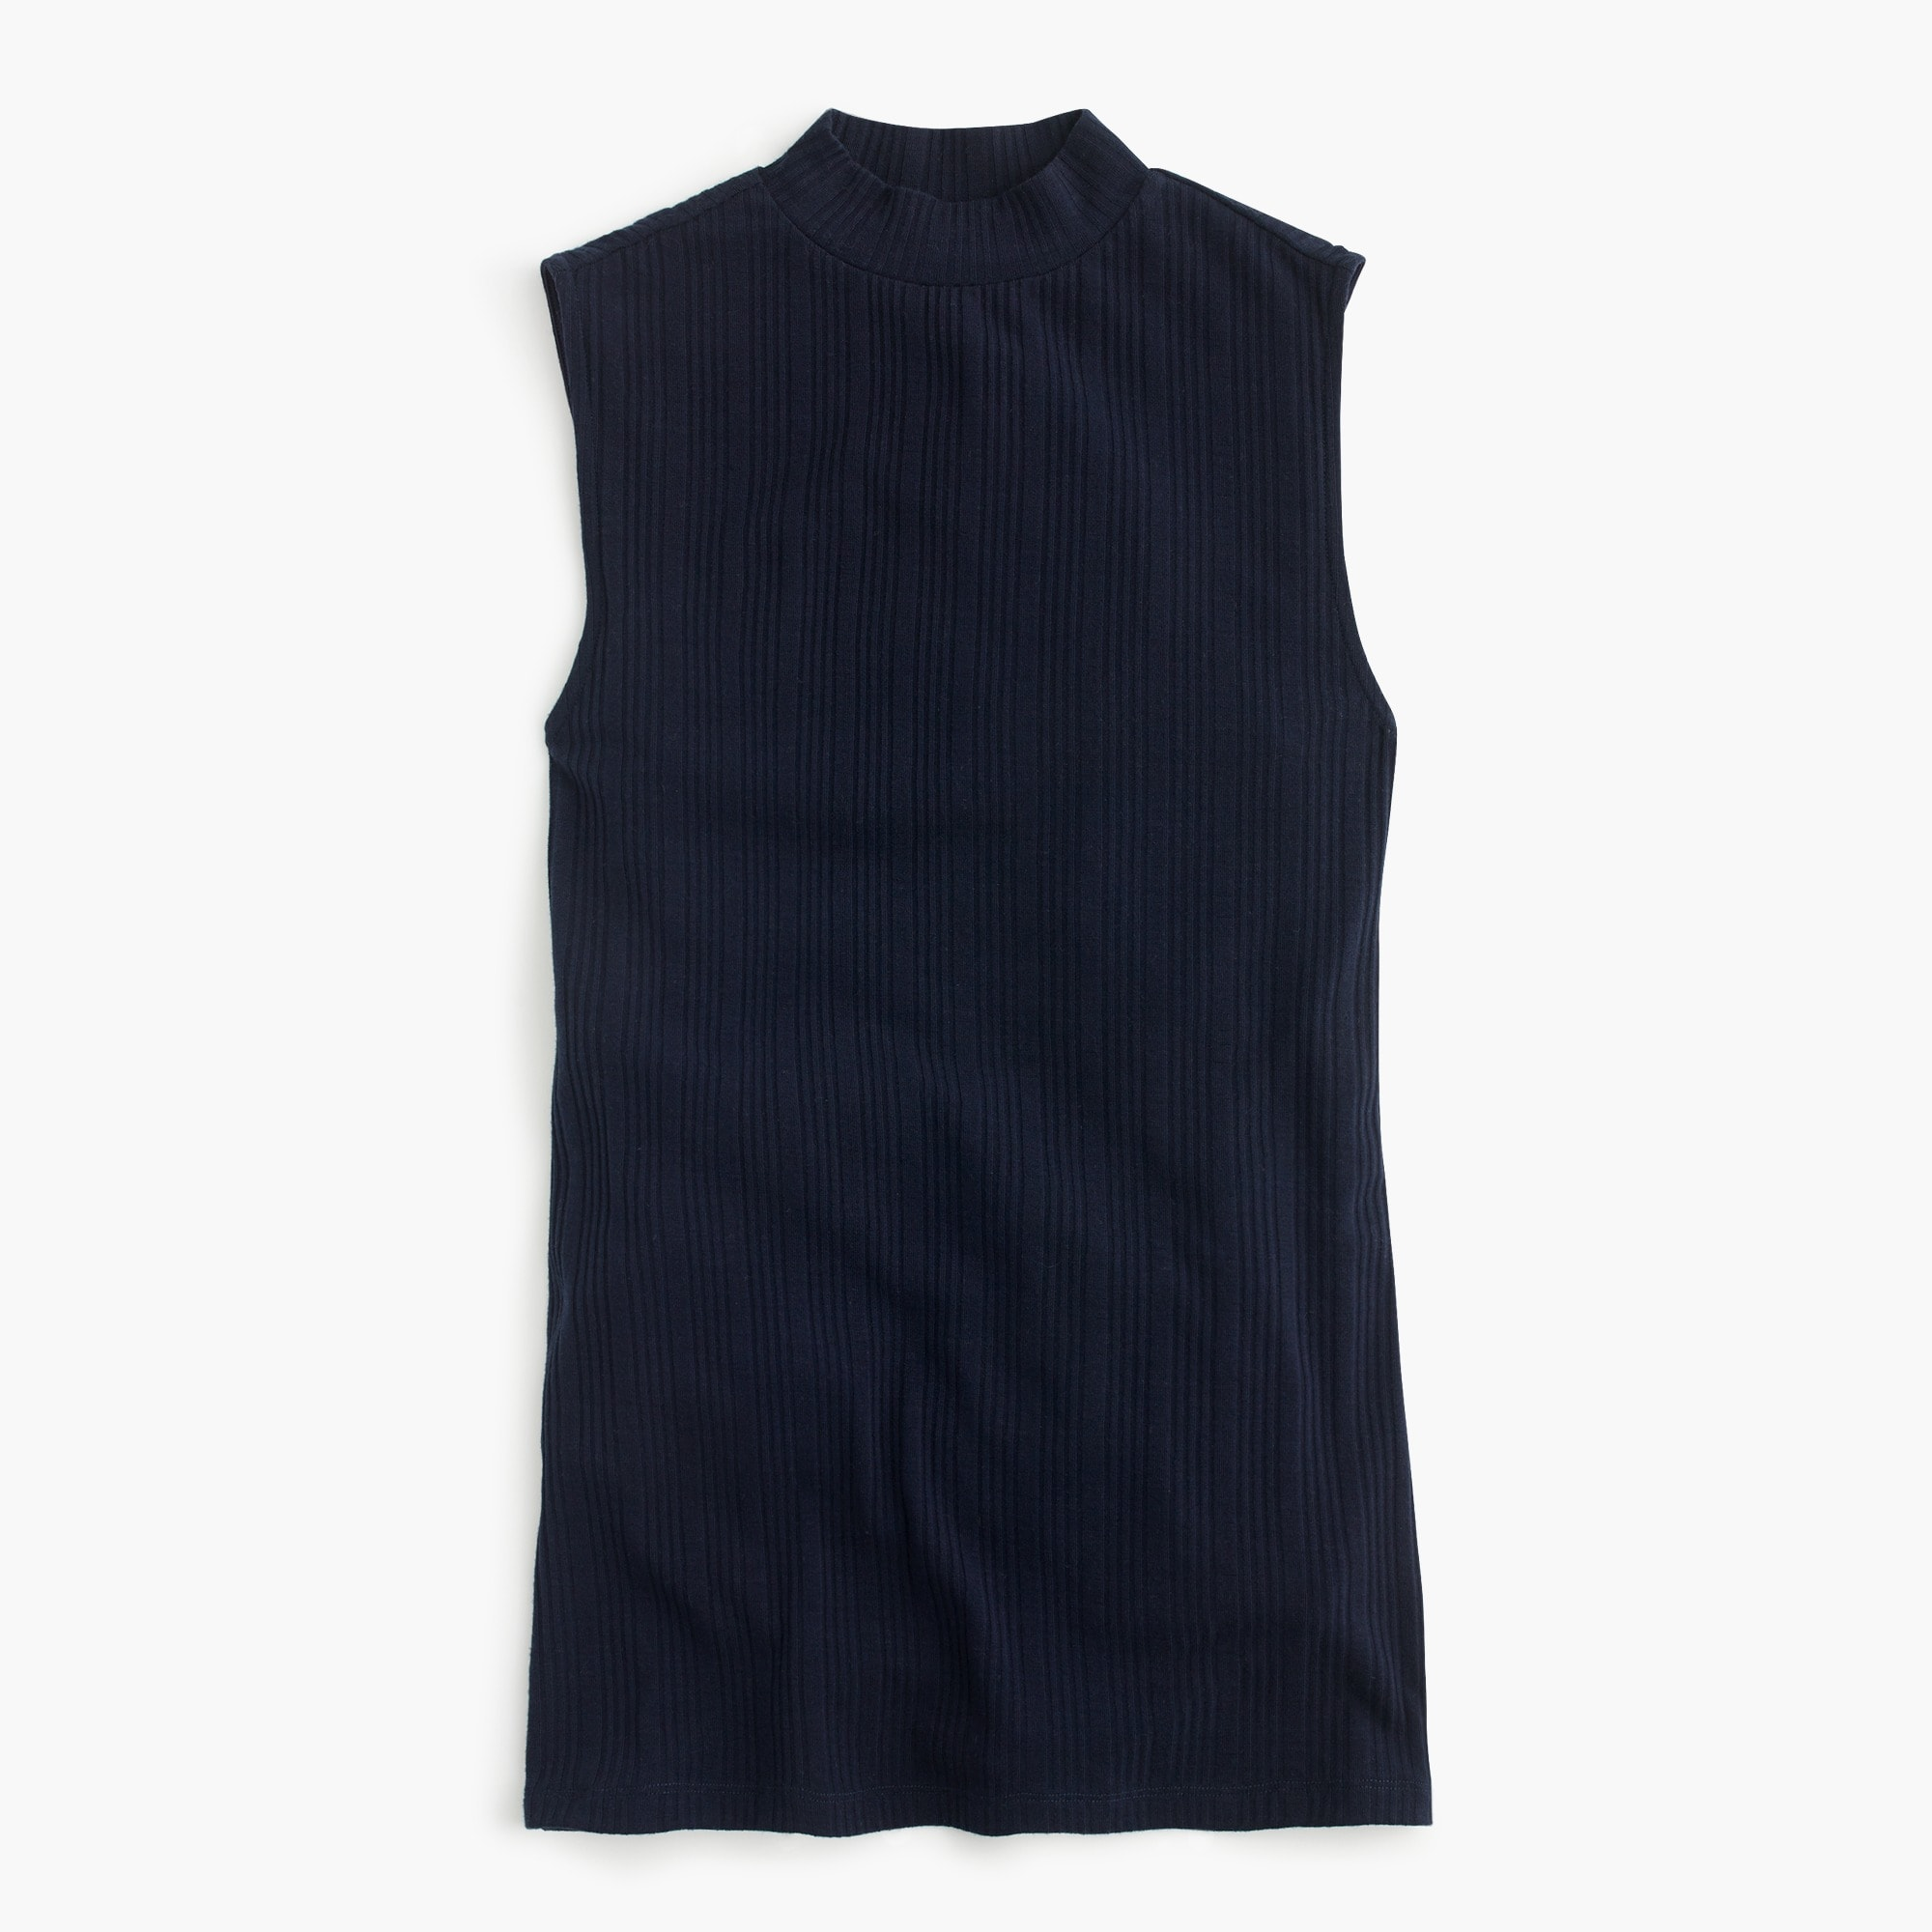 Ribbed mockneck tank top